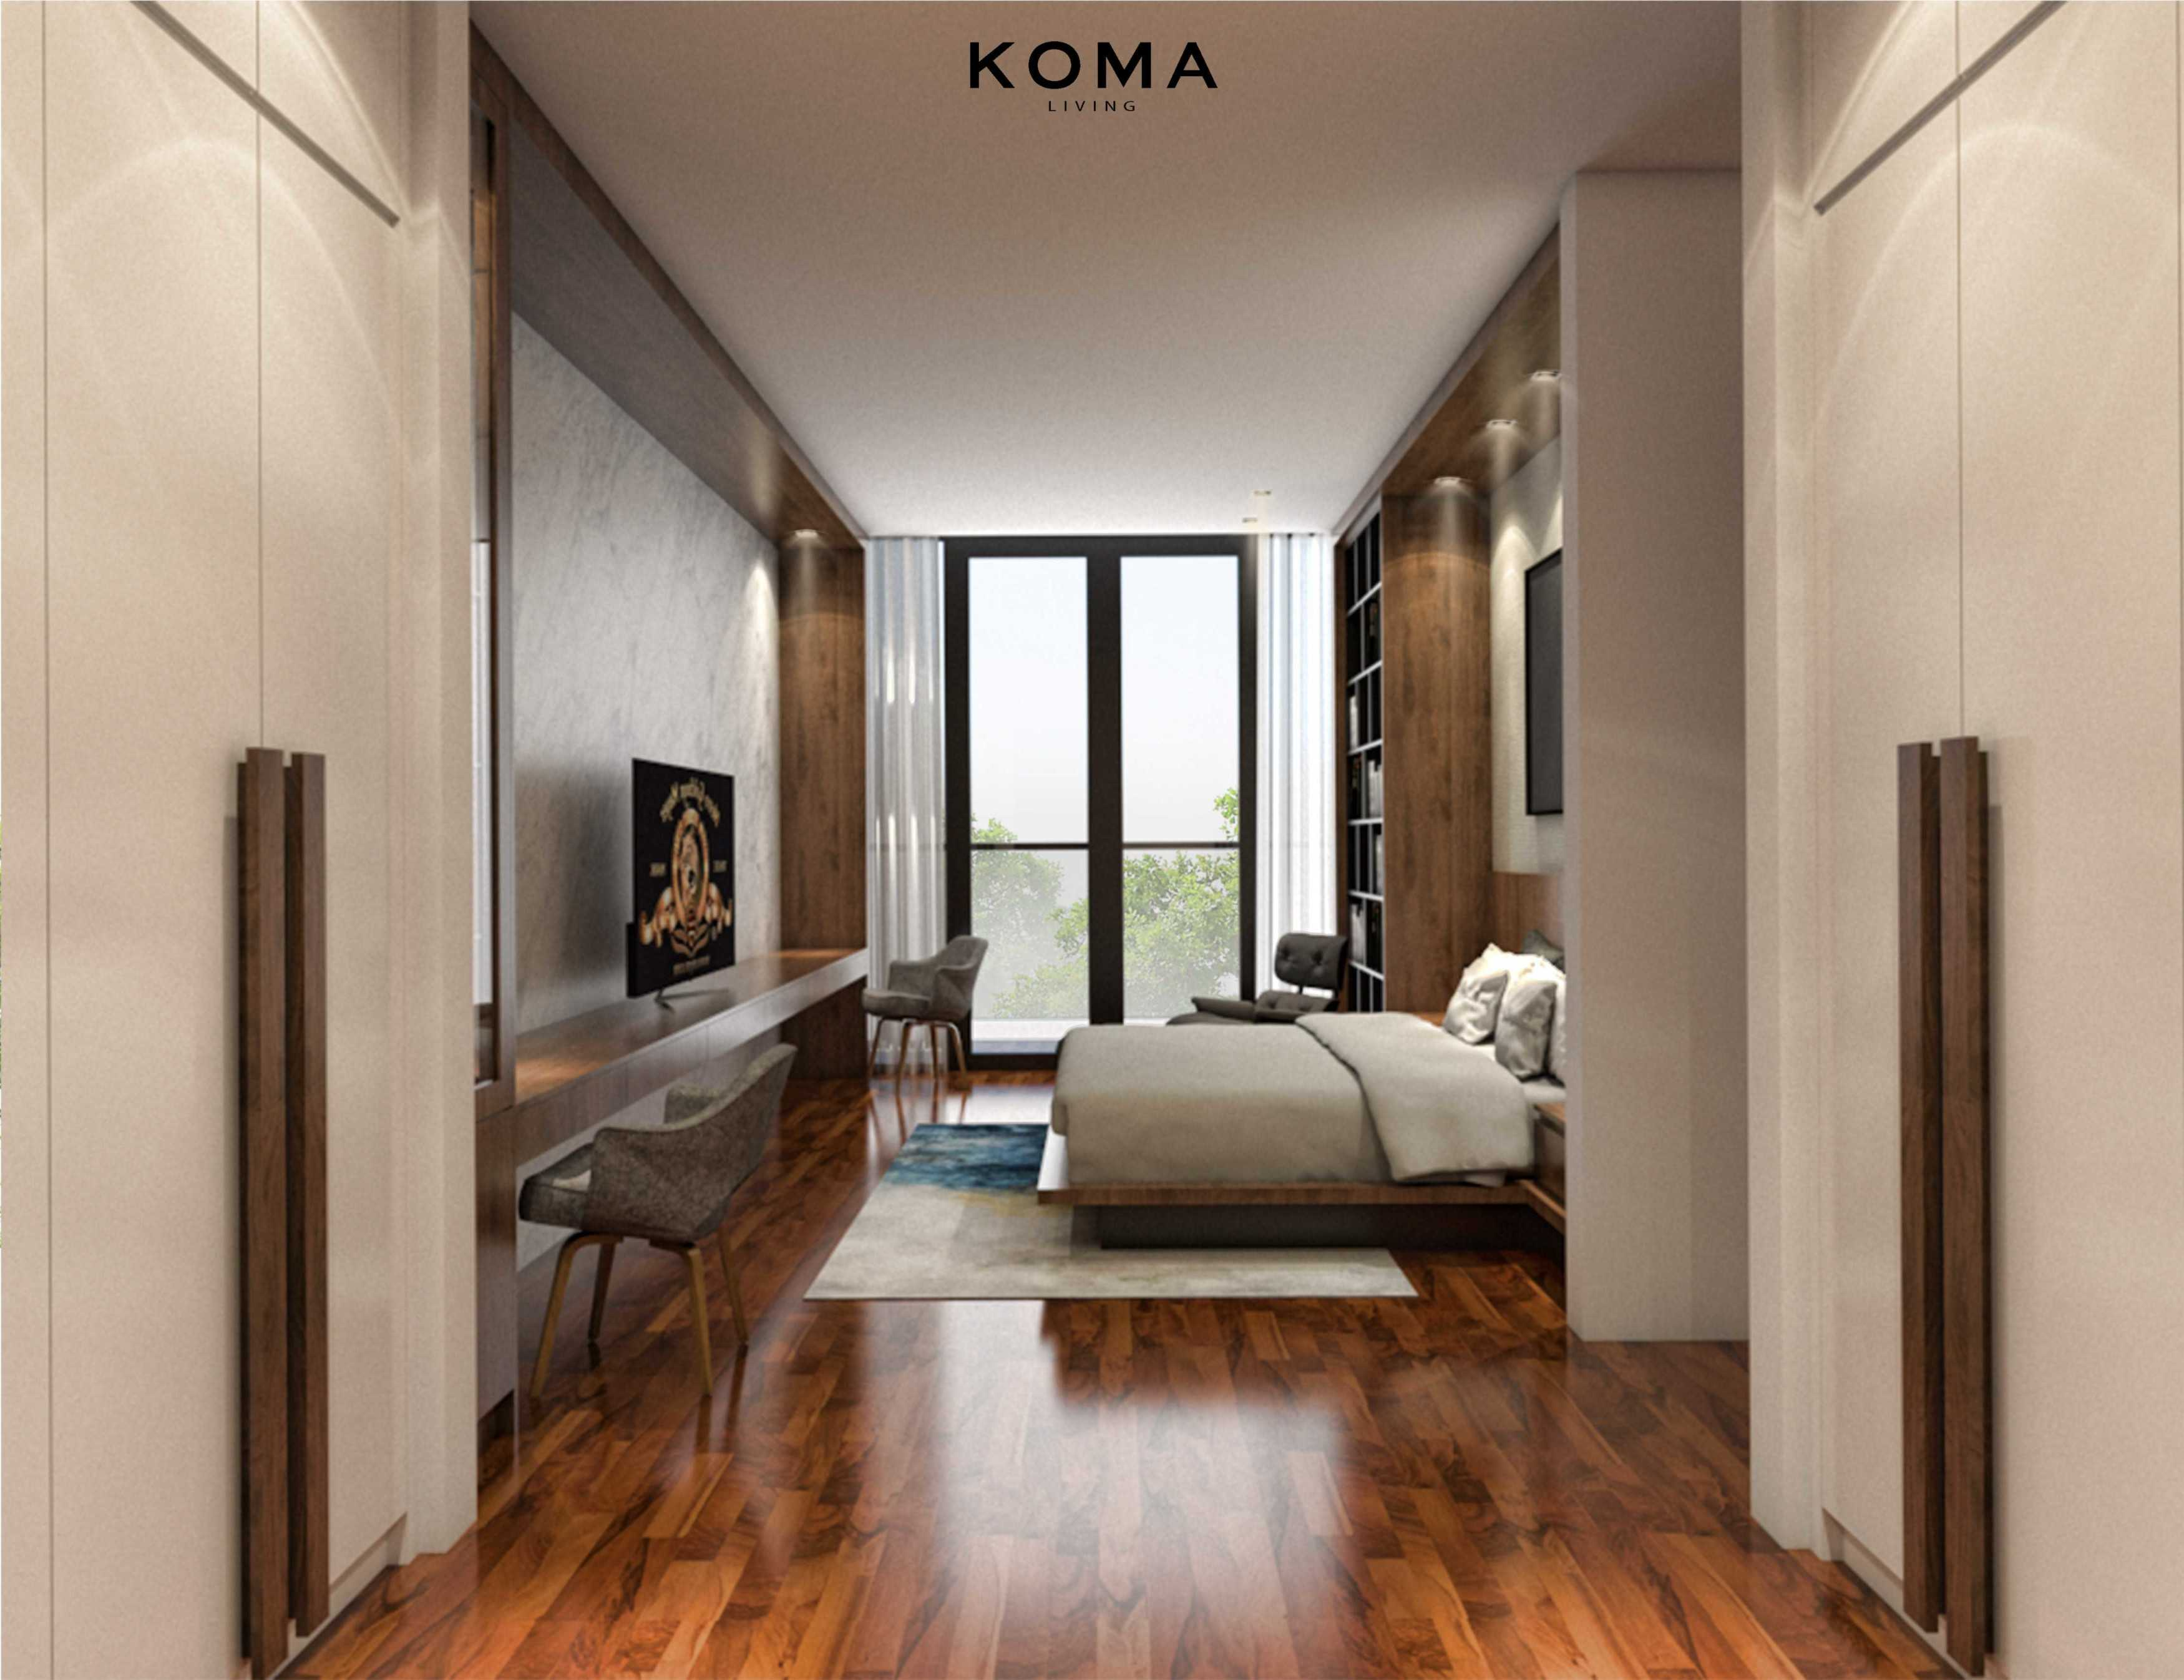 Koma Bs House Jl. Jalur Sutera No.17, Kunciran, Pinang, Kota Tangerang, Banten 15143, Indonesia Jl. Jalur Sutera No.17, Kunciran, Pinang, Kota Tangerang, Banten 15143, Indonesia Koma-Bs-House  Bs House Located At Alam Sutera, Tangerang, Indonesia, A Renovation From Row House Built By Alam Sutera Realty And Redesigned By Koma Architect, The Architectural Concept For The House Is Elegant And Sleek DesignWith Rich Natural Material Combined With TakingFull Advantage Of Relating To Its Natural Surroundings, MakeThis House Have AStrong Relationship Between The House And Nature. 70237